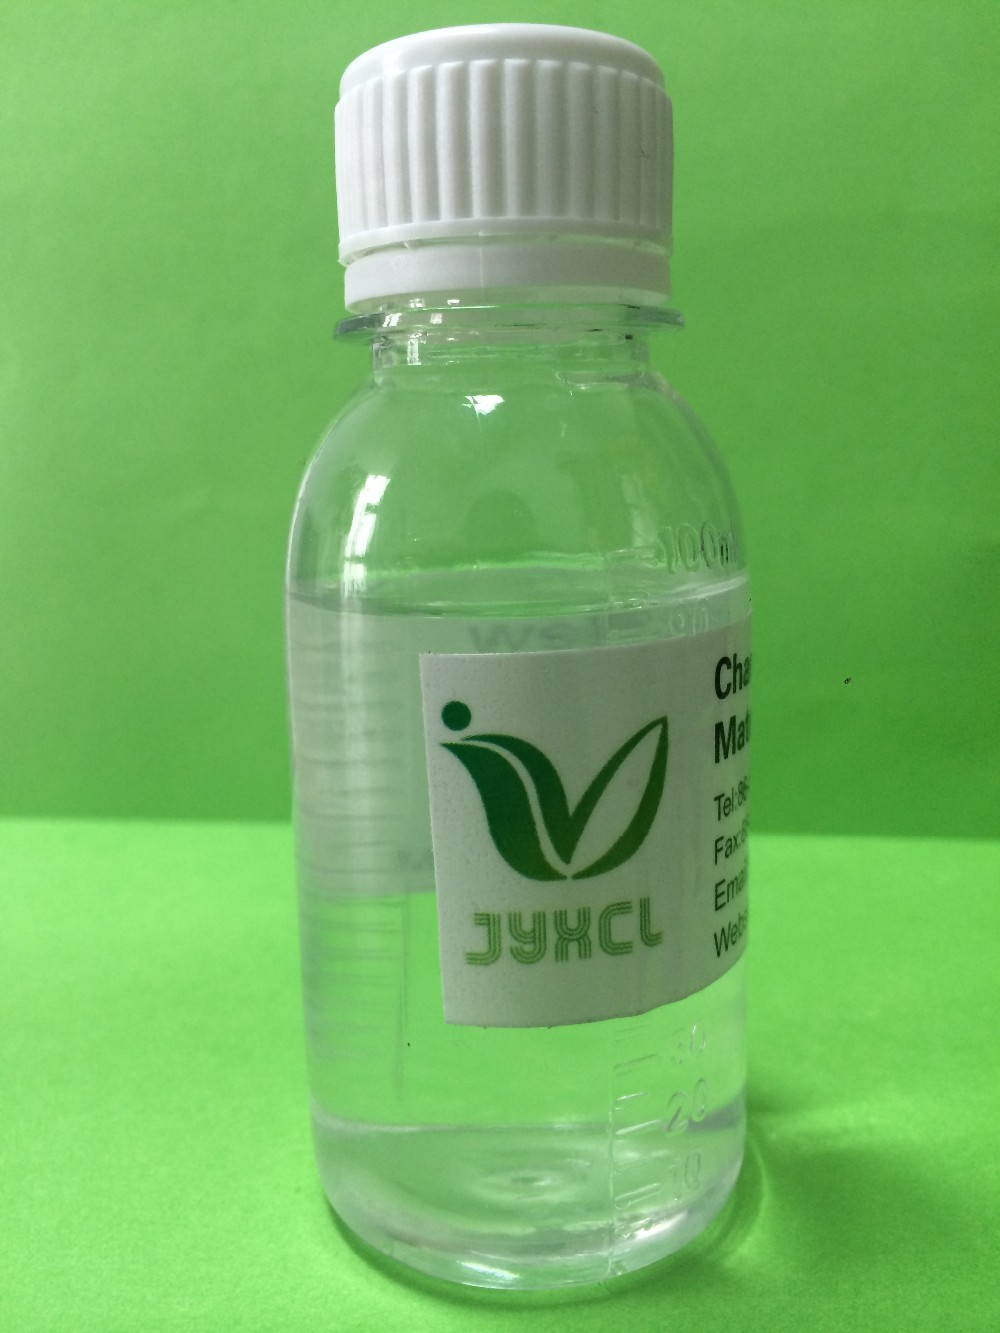 JY-203 silicone fluid oil for fabric softer treatment